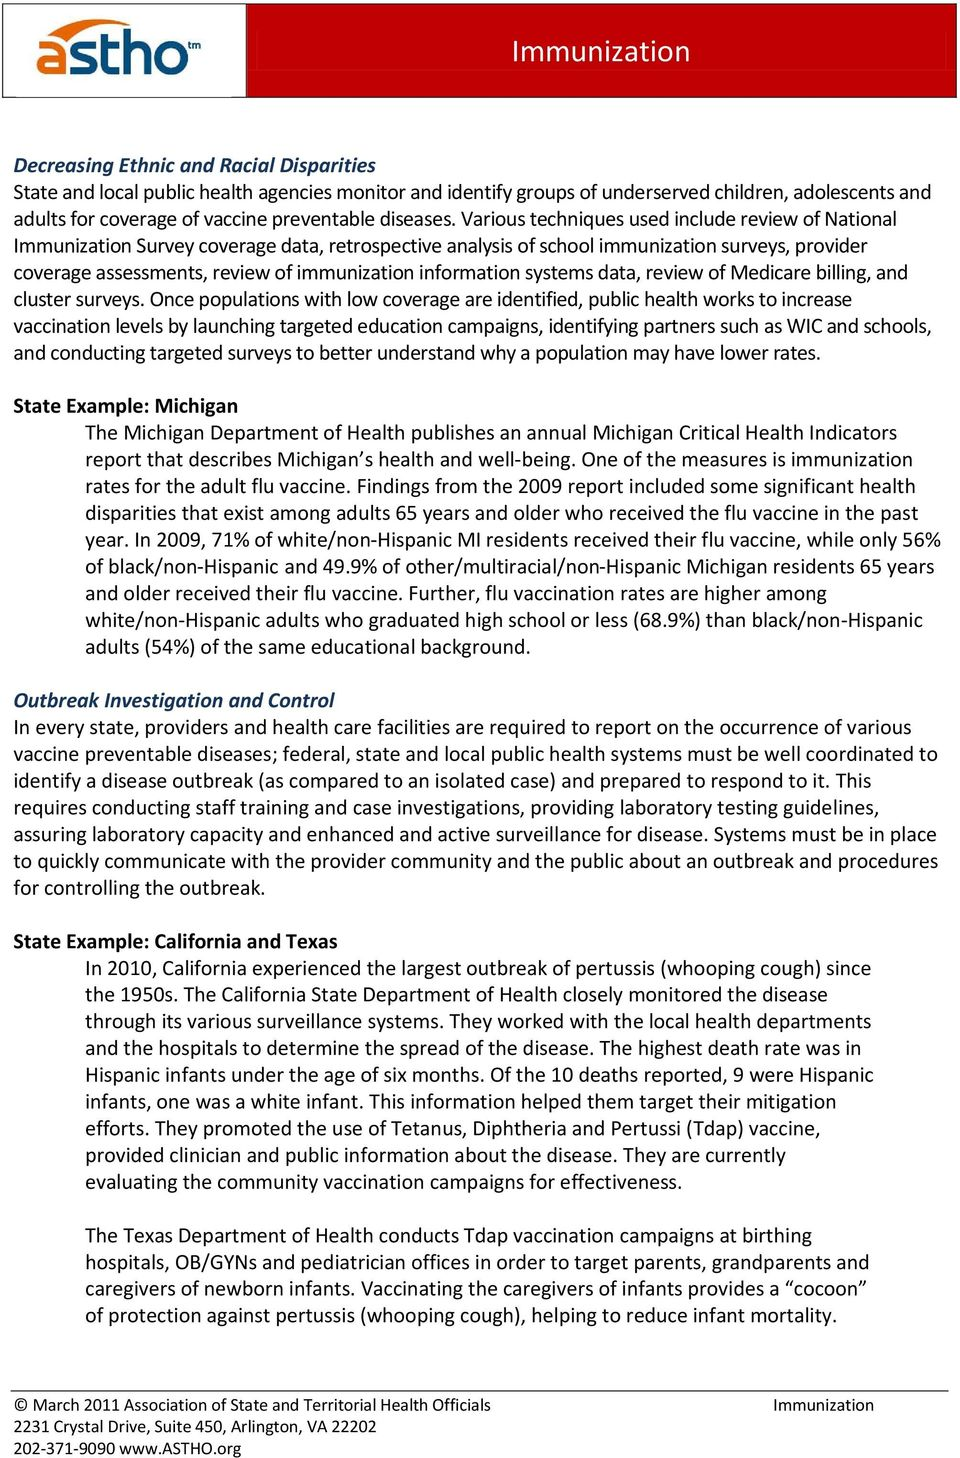 Various techniques used include review of National Immunization Survey coverage data, retrospective analysis of school immunization surveys, provider coverage assessments, review of immunization